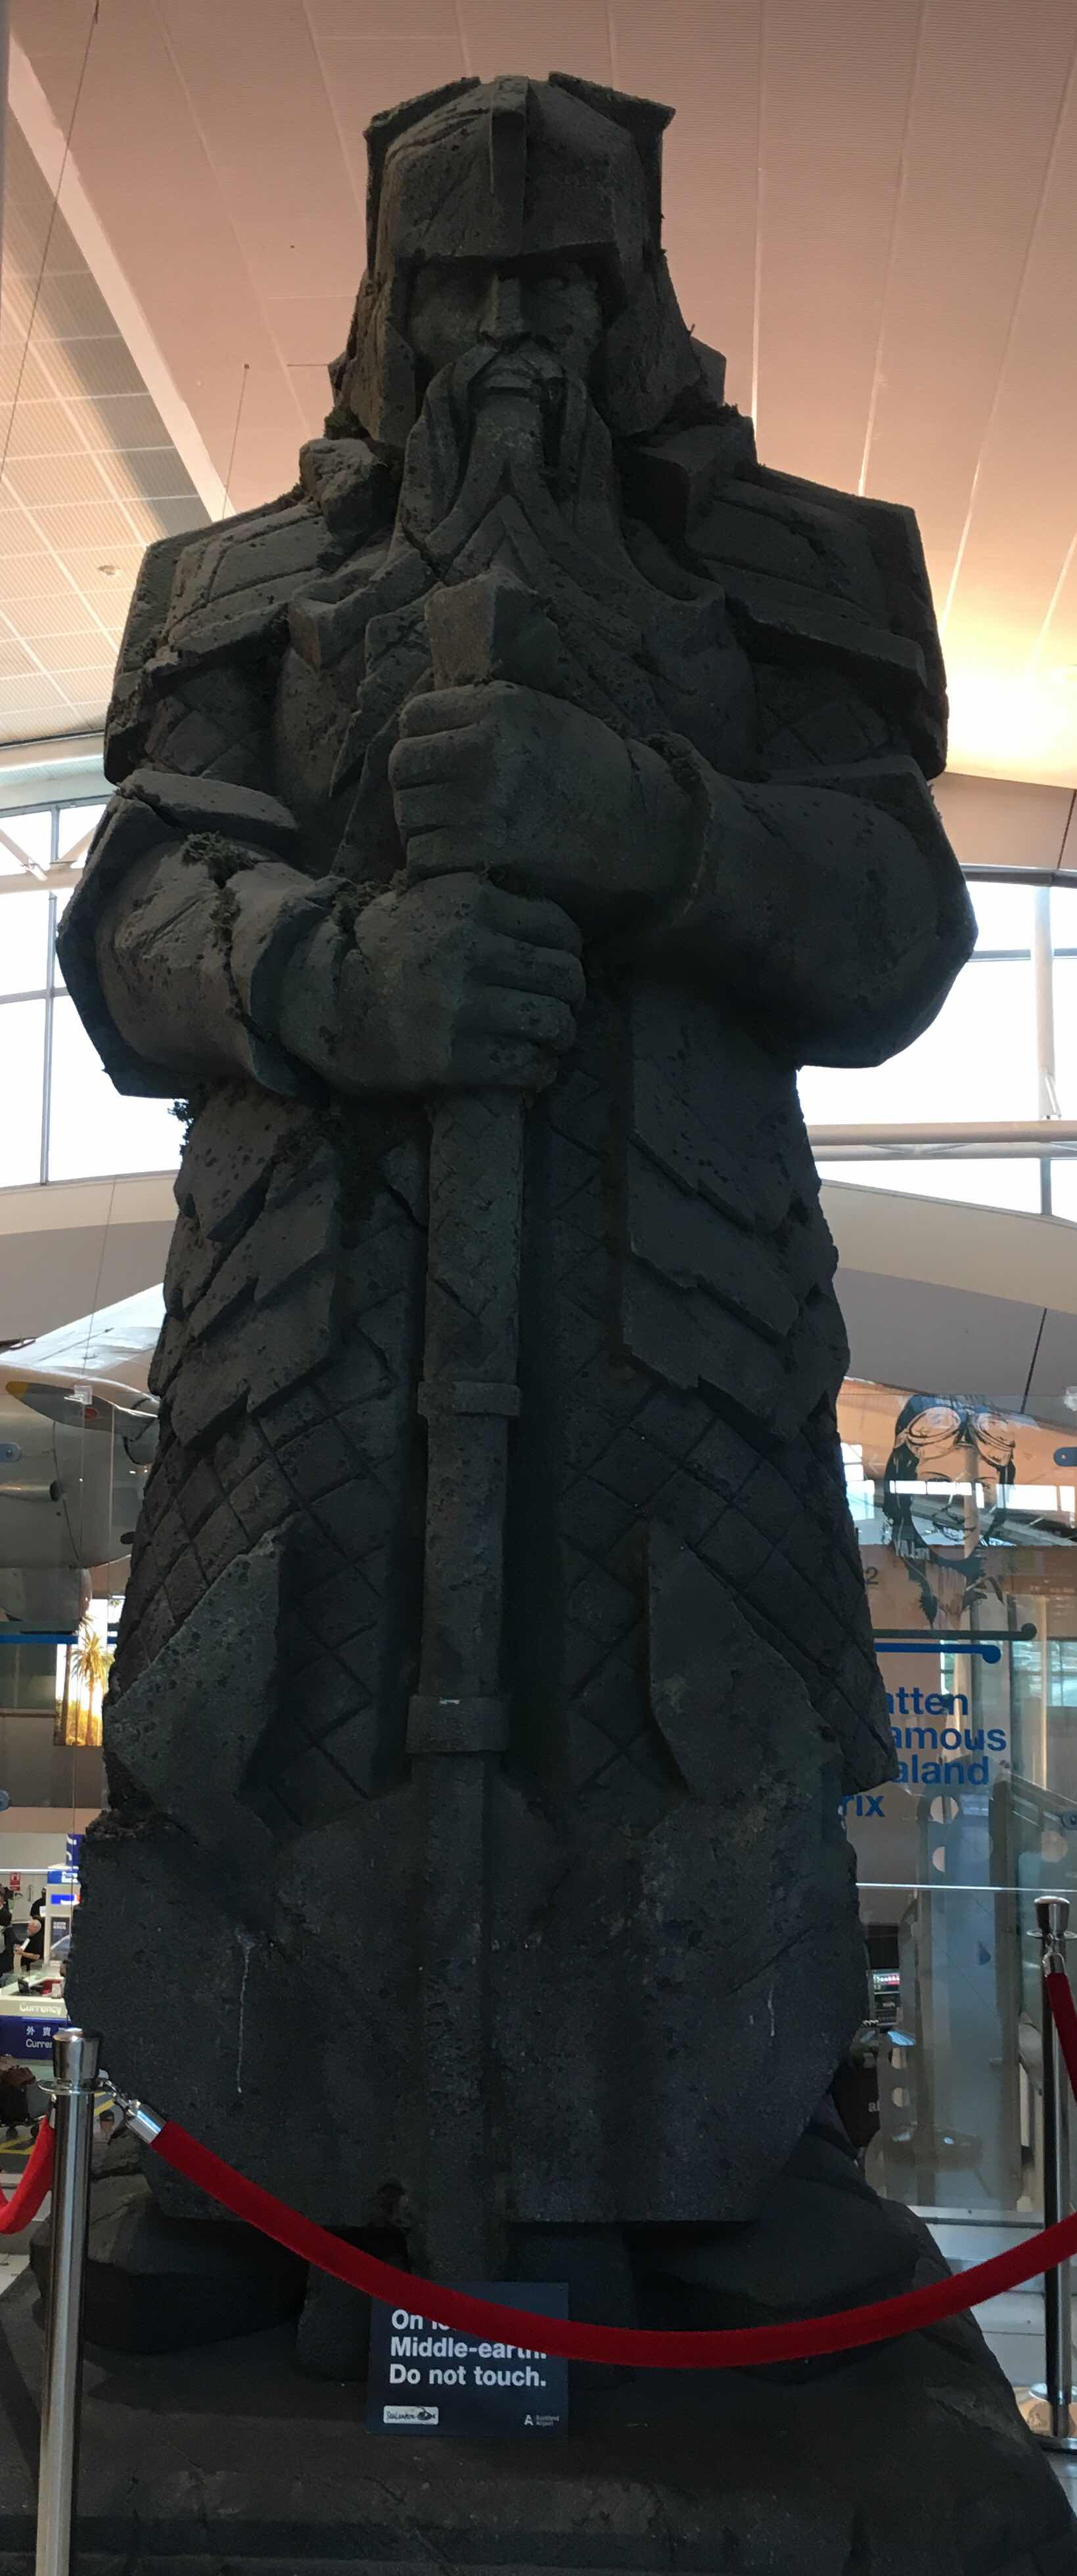 Auckland airport Lord of the Rings statue